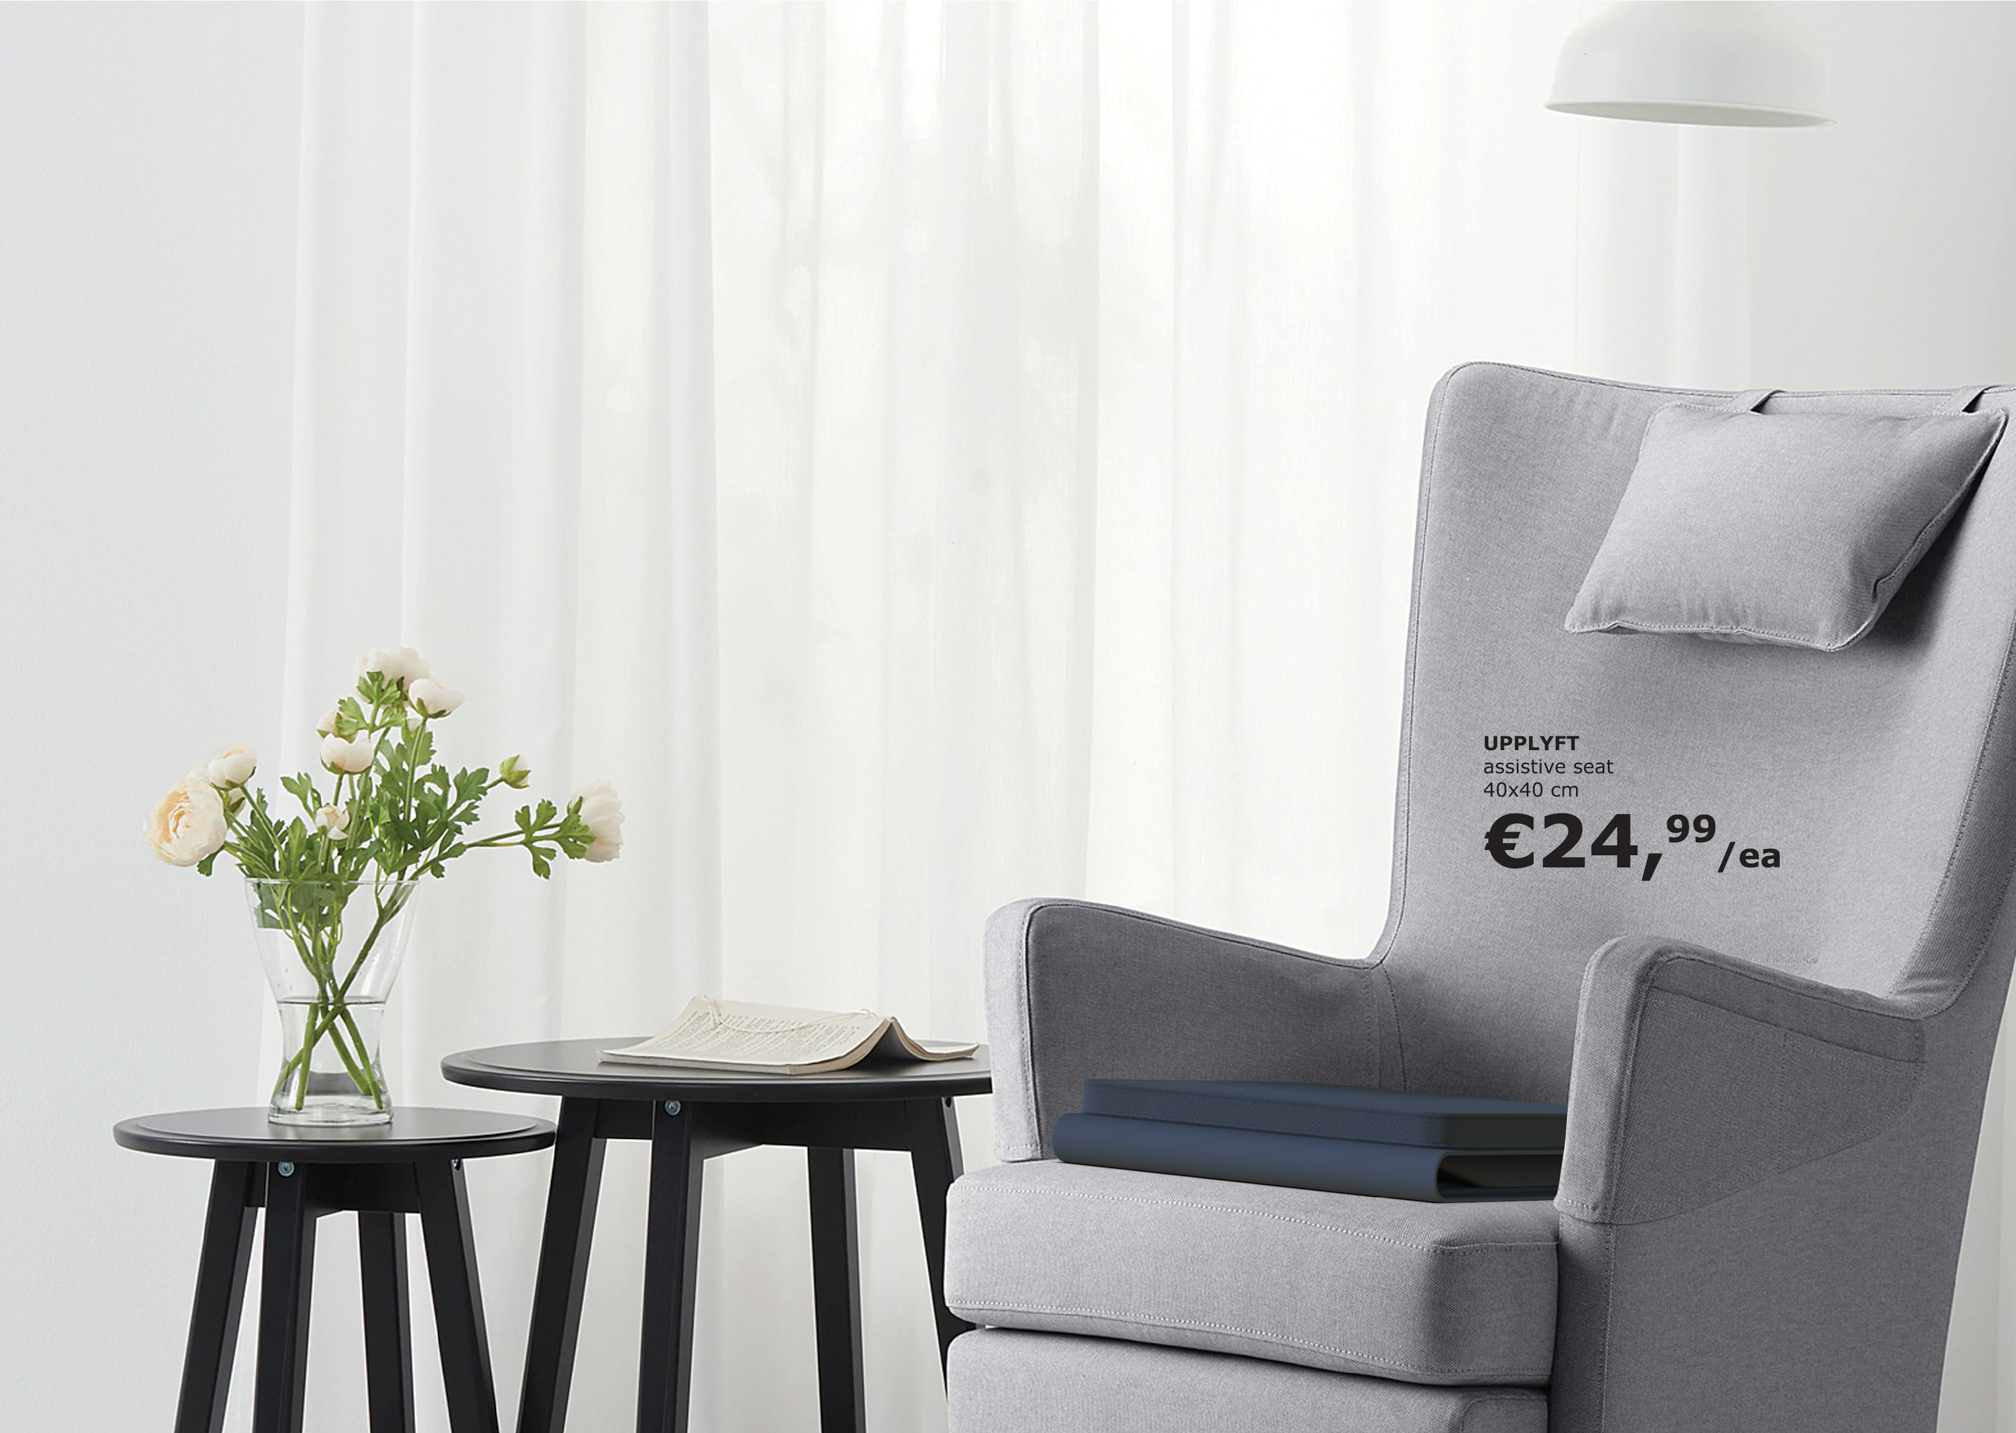 The  portable assistive seat placed on a grey armchair